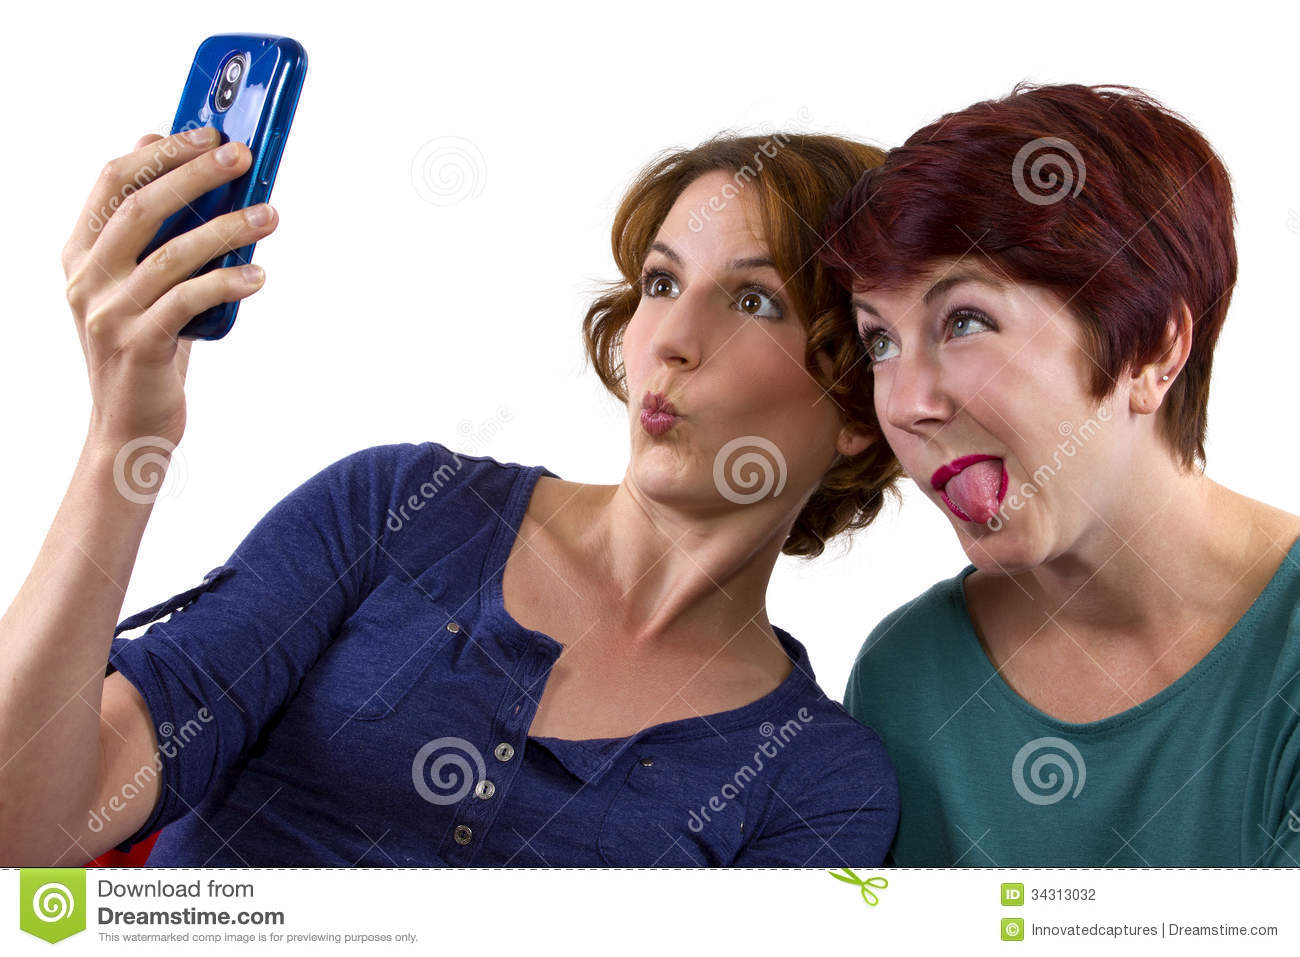 Two women taking self portraits with a cell phone.